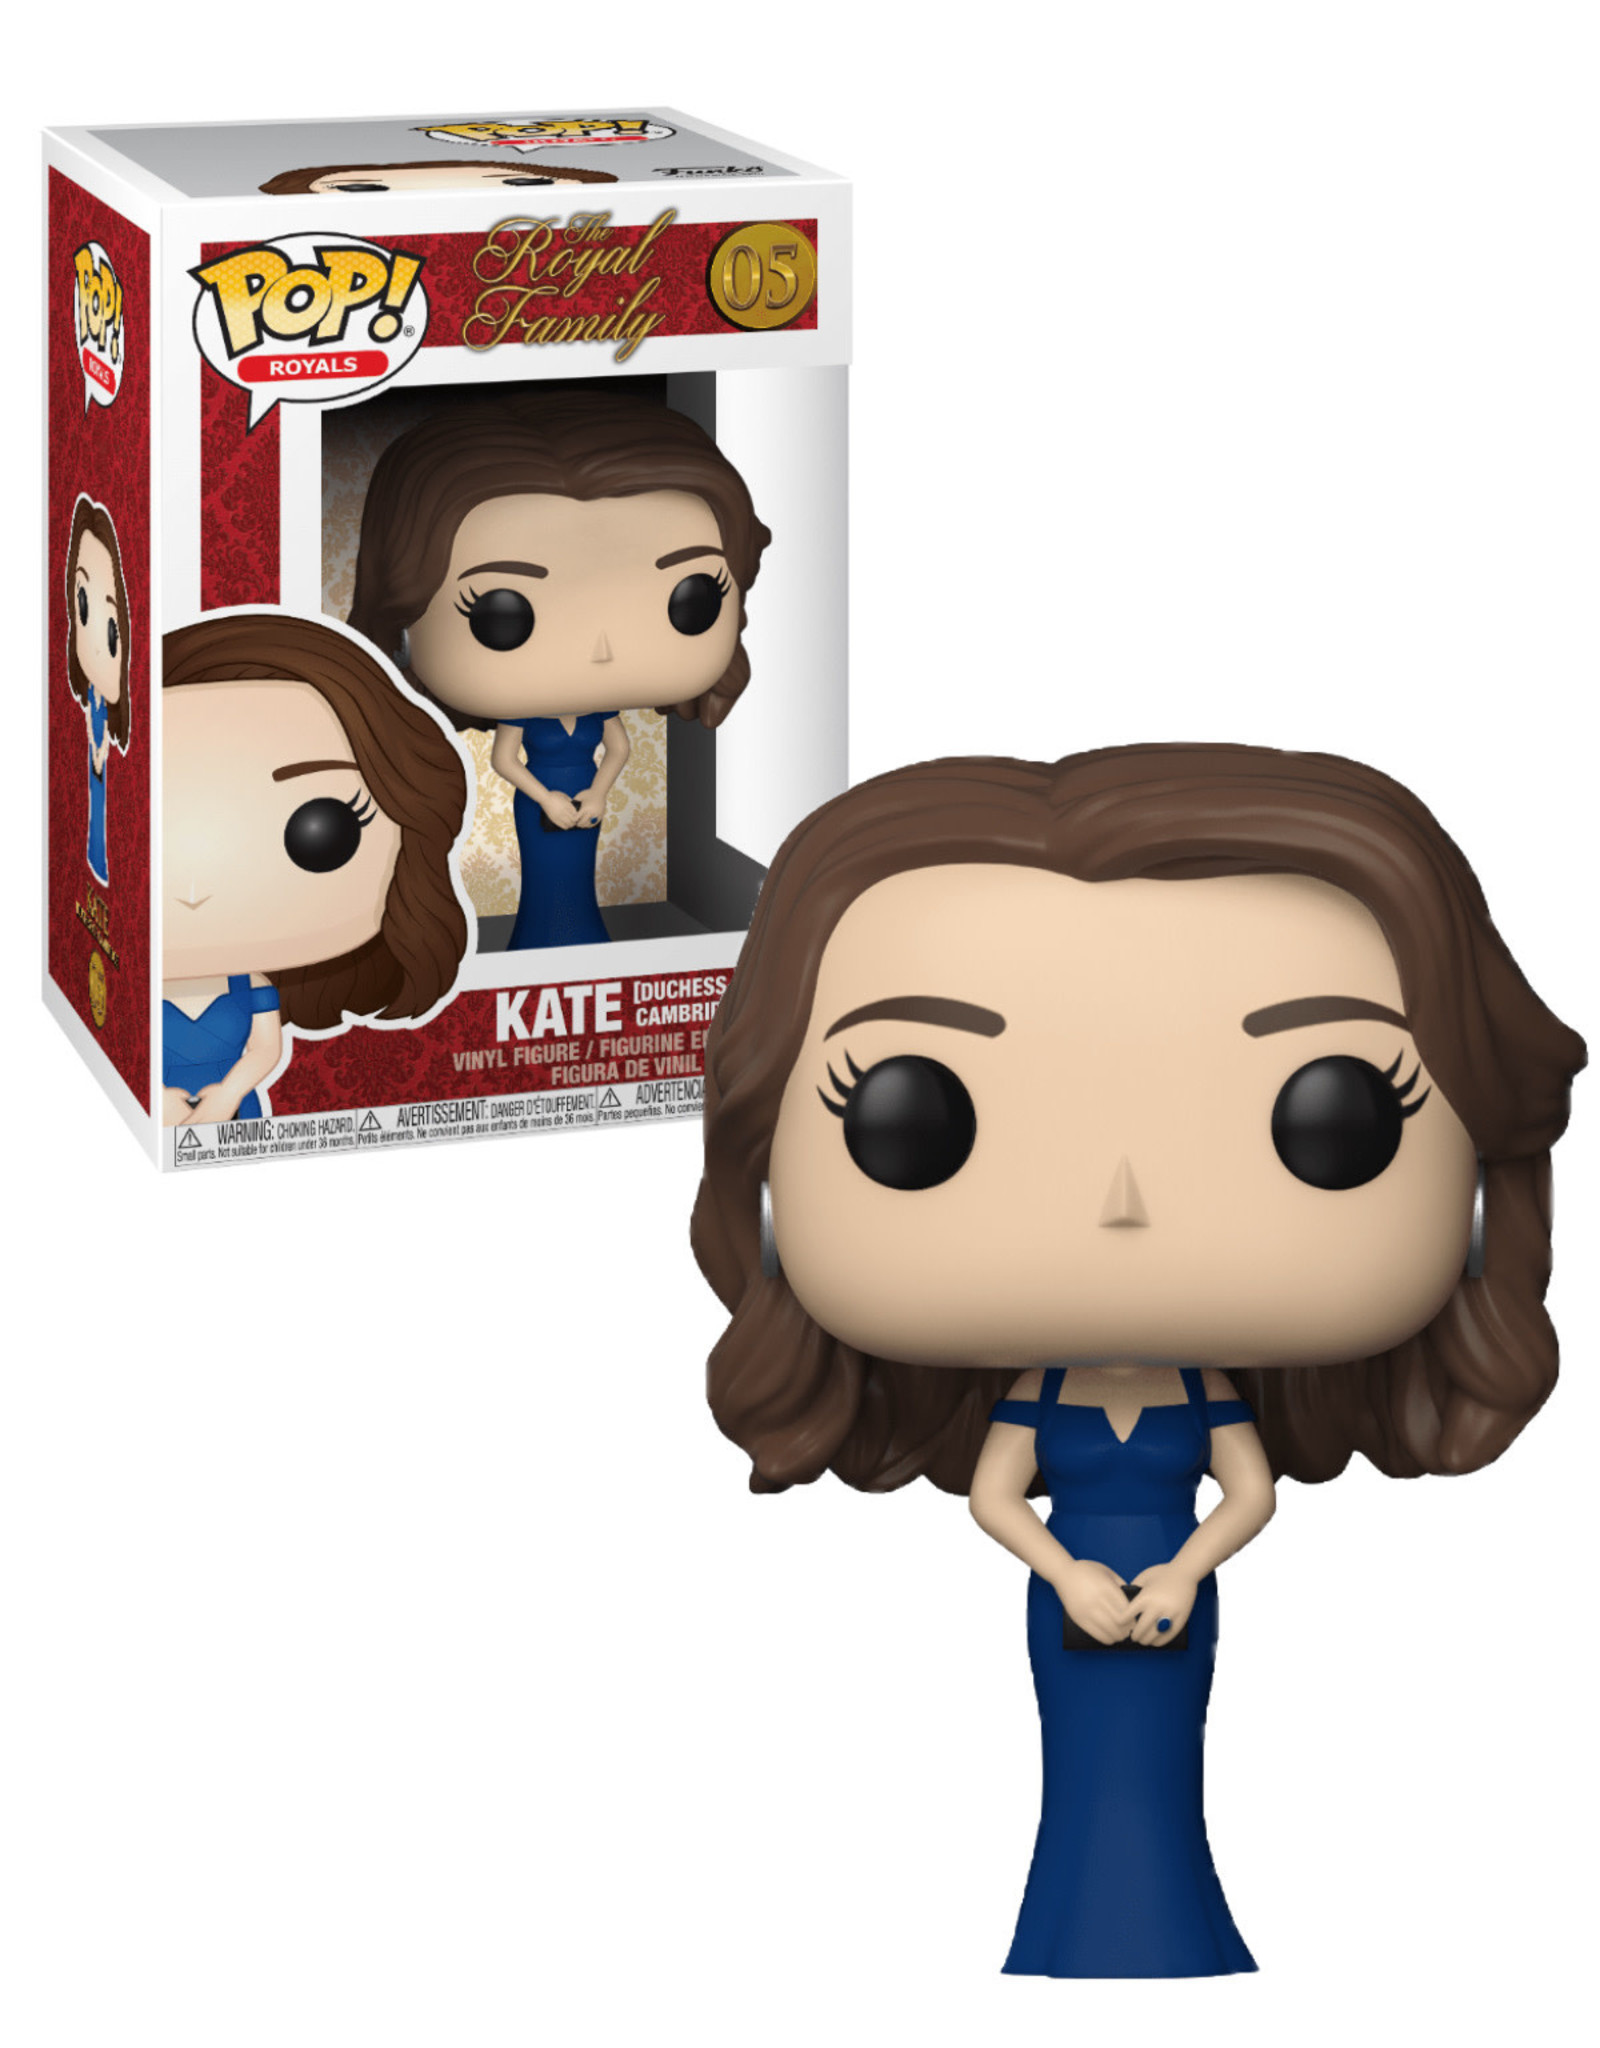 The Royal Family  05 ( Funko Pop ) Kate